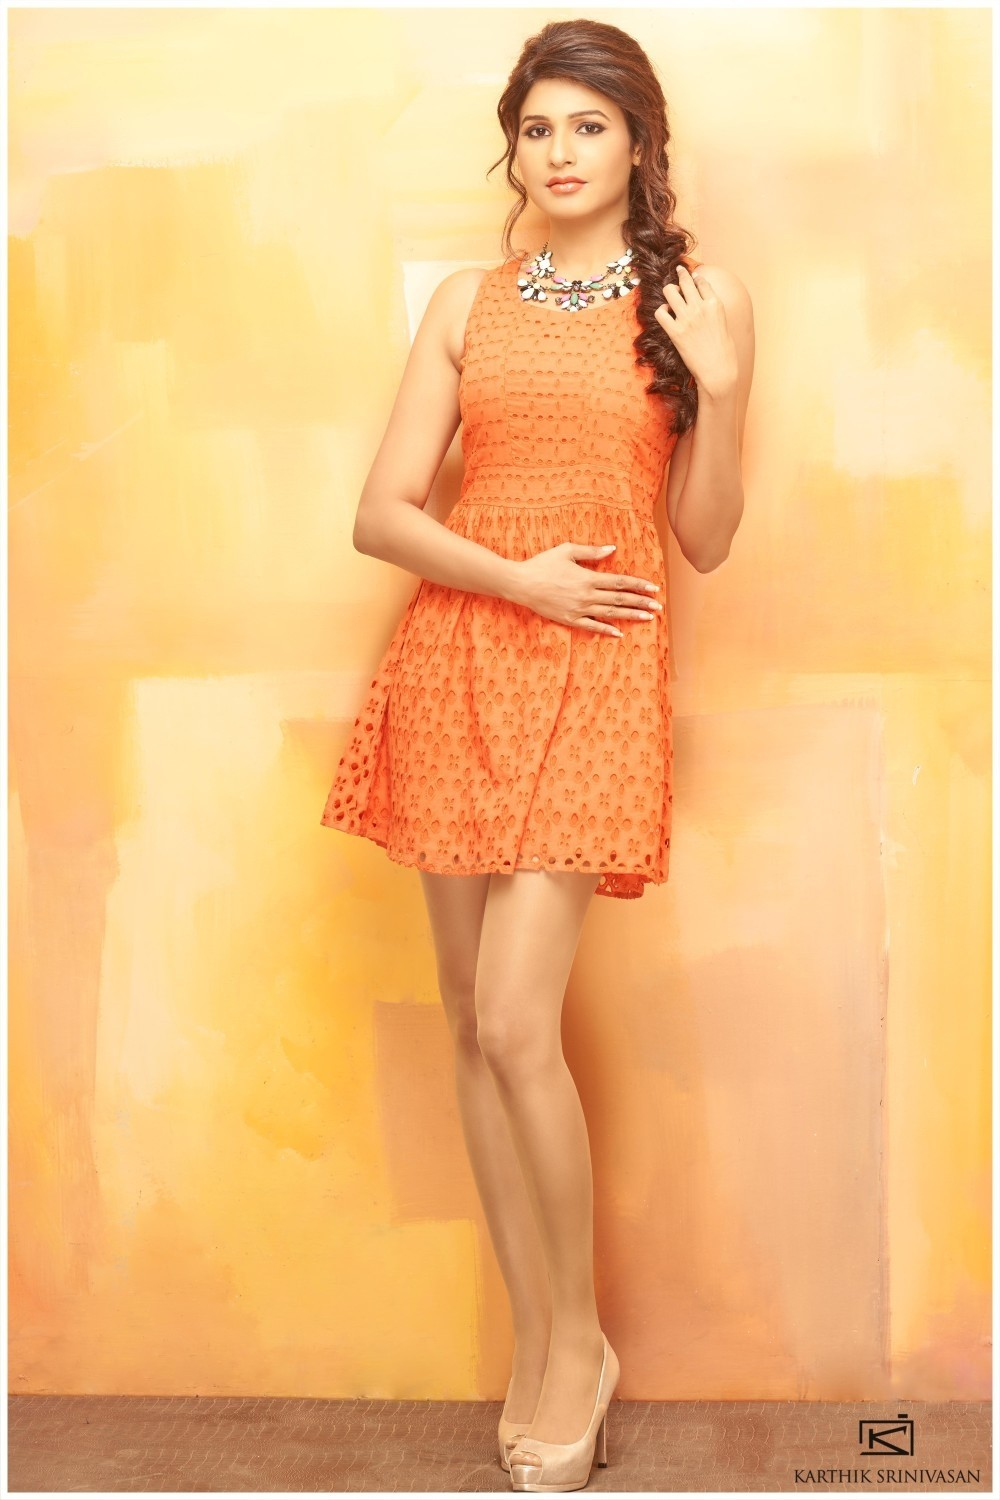 Actress Anjena Kirti photoshoot,Anjena Kirti,Anjena Kirti latest photos,Anjena Kirtilatest stills,Anjena Kirti latest news,Anjena Kirti photo gallery,Tamil actress Anjena Kirti,Anjena Kirti images,images of  Anjena Kirti,beststill of  Anjena Kirti,Anjena